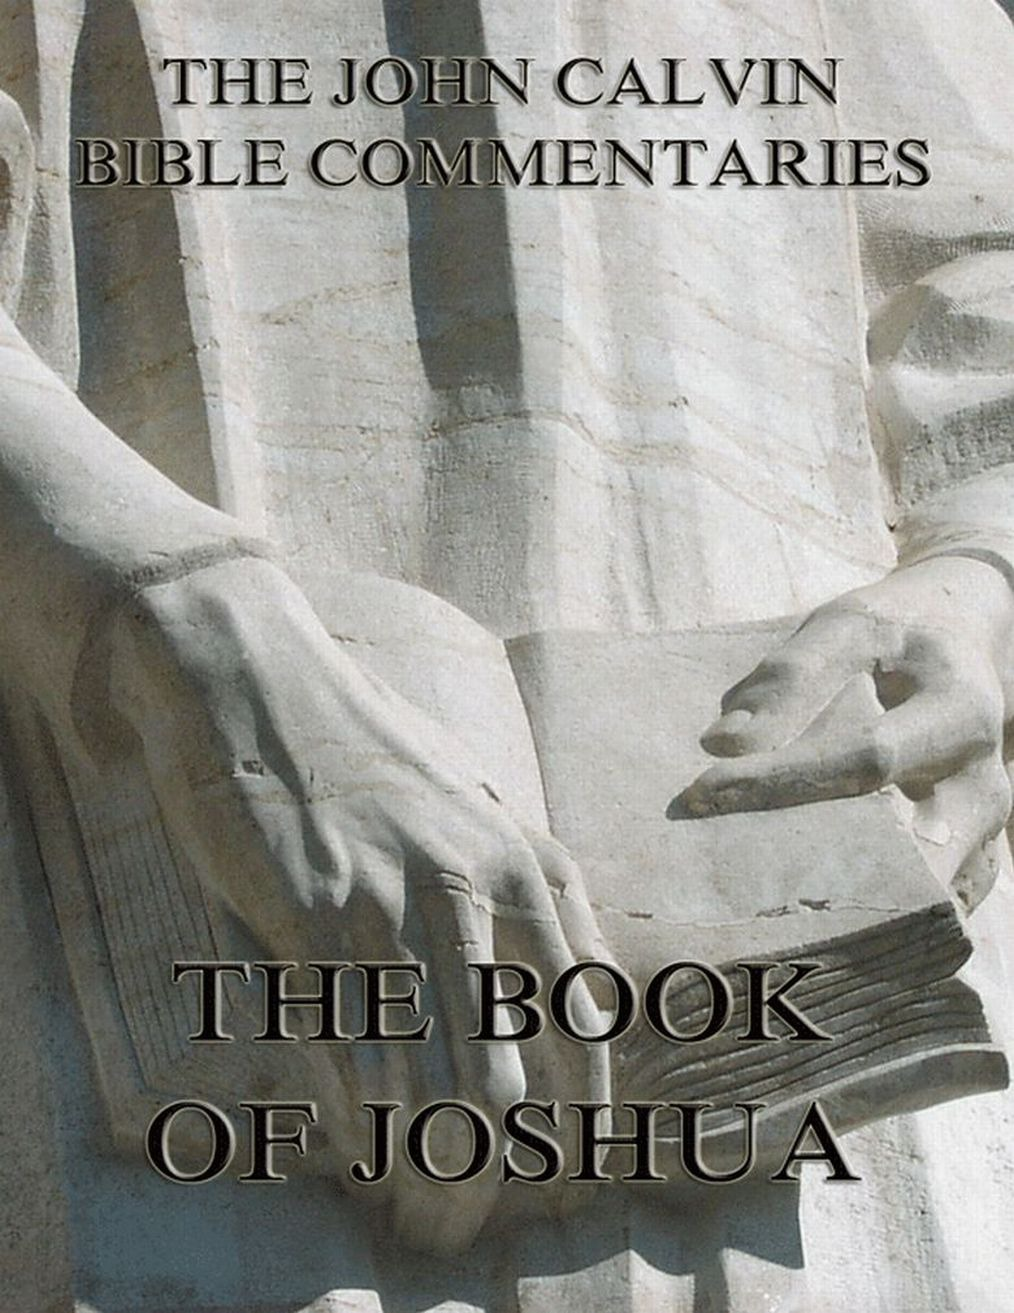 John Calvin John Calvin's Commentaries On The Book Of Joshua william garden blaikie the book of joshua v 6